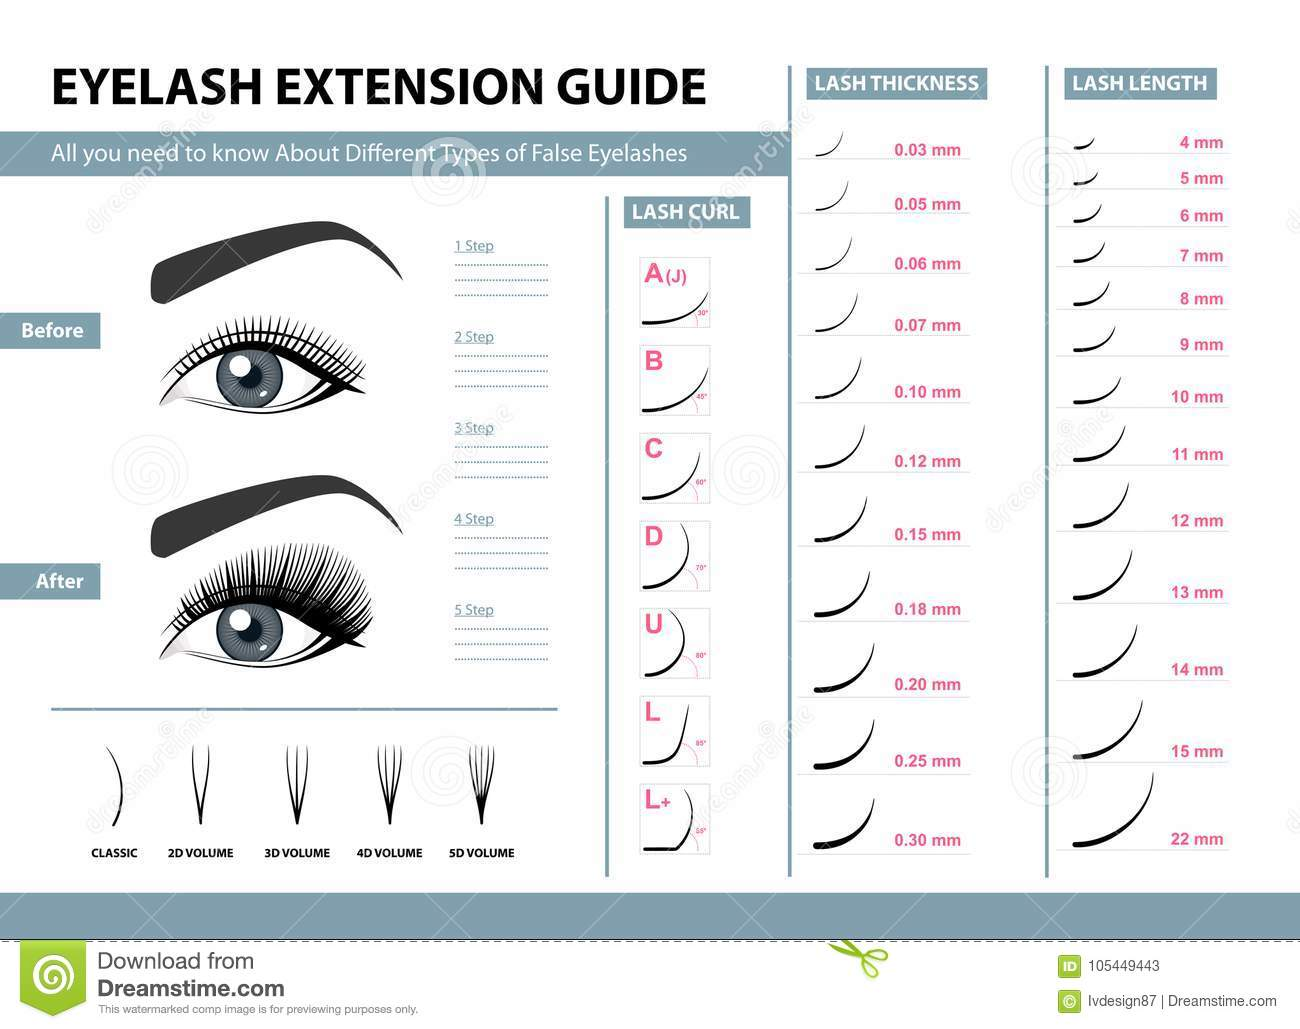 556c31ee705 Eyelash extension guide. Different Types of False Eyelashes. Infographic  vector illustration. Template for